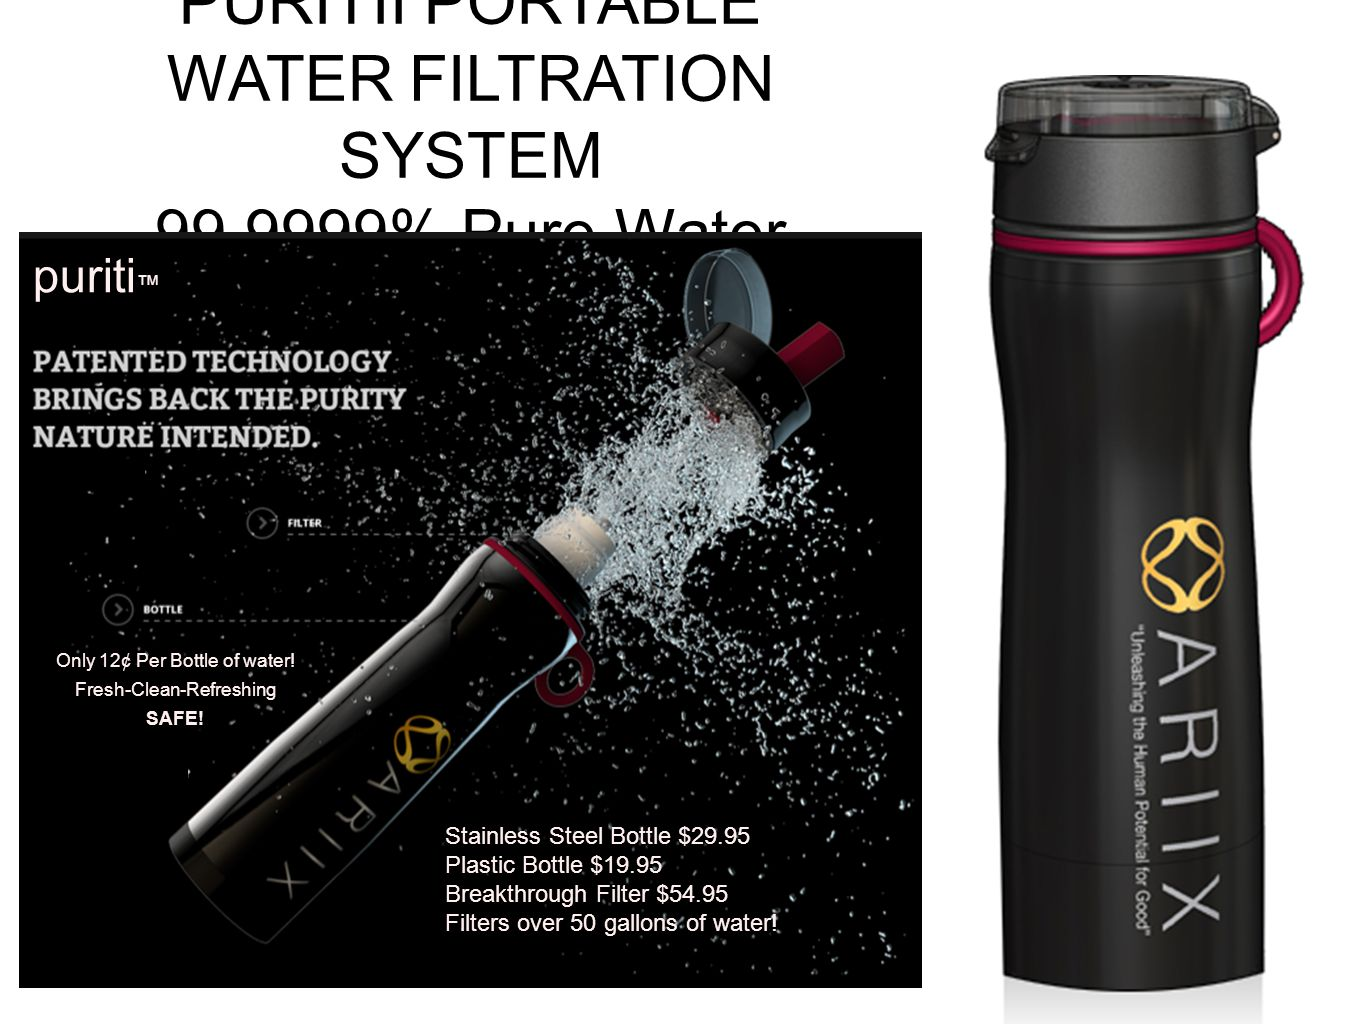 WATER FILTRATION SYSTEM 99.9999% Pure Water